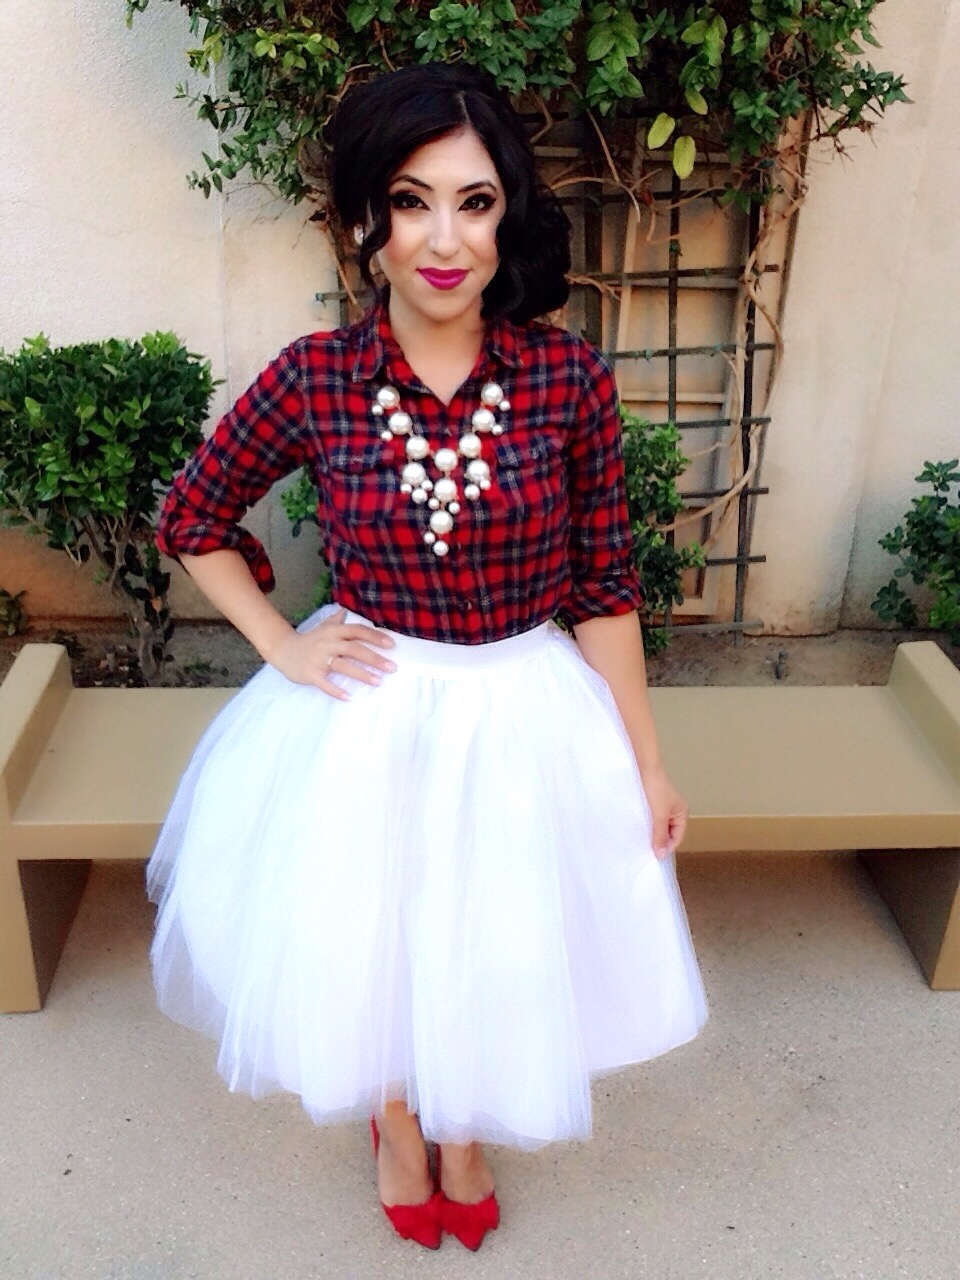 c4255e00f1d How to Style a Tulle Skirt  Plaid   Tulle! Featuring Taralynns  Boutique🍁🍃🍂✨🍂🍃🍁✨🍂🍃🍁✨🍂🍃🍁